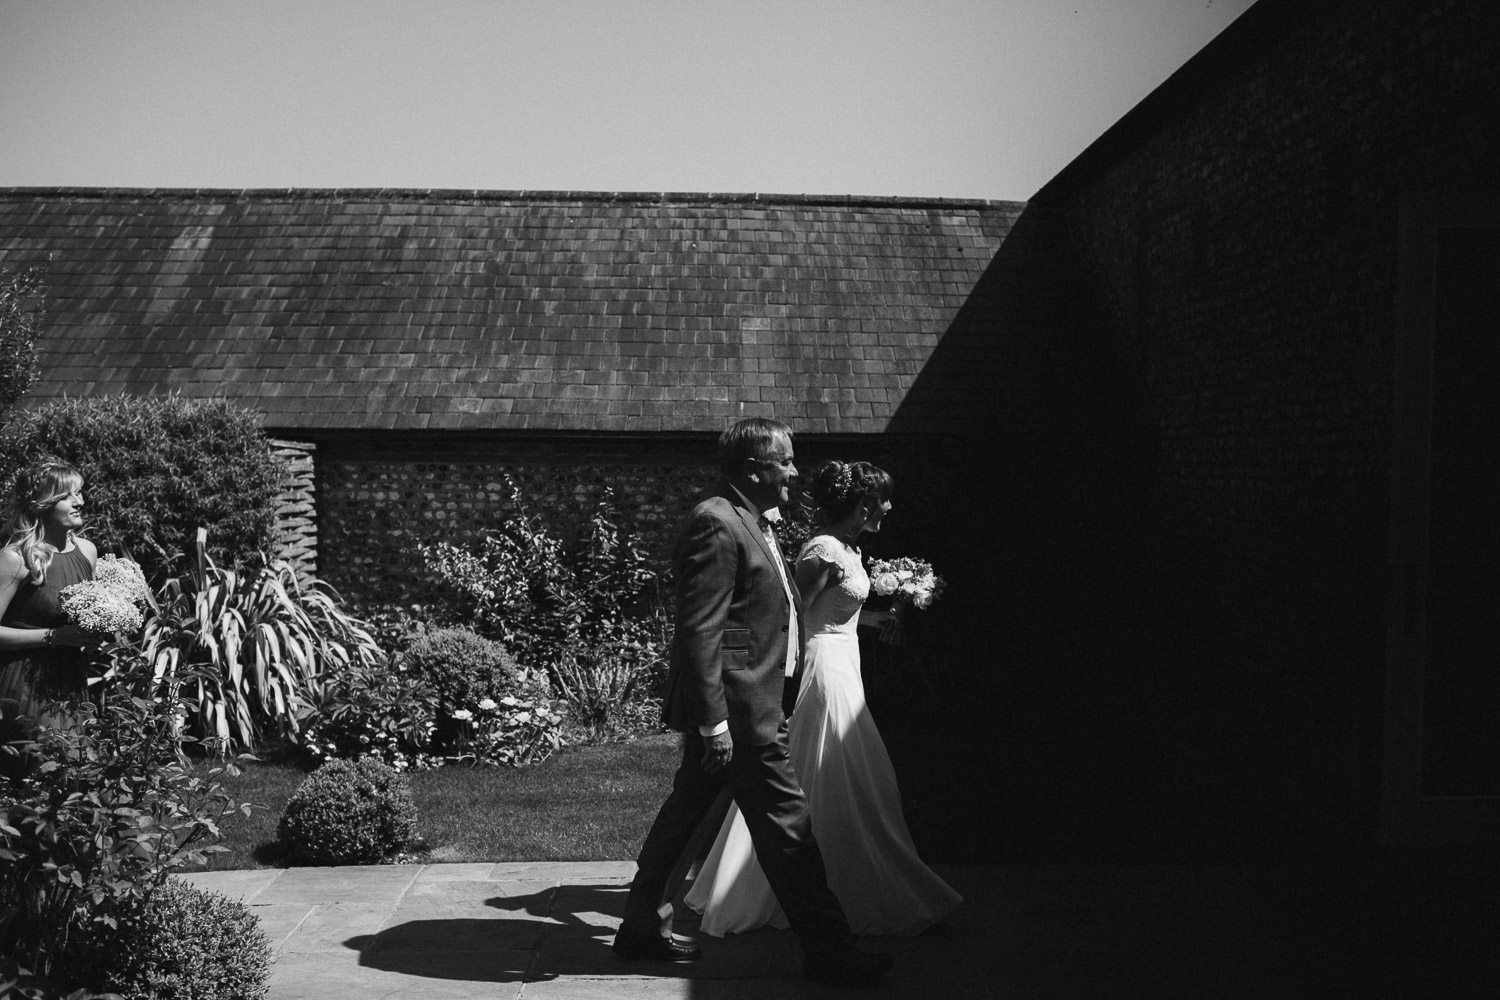 the father and bride walking across the secret garden